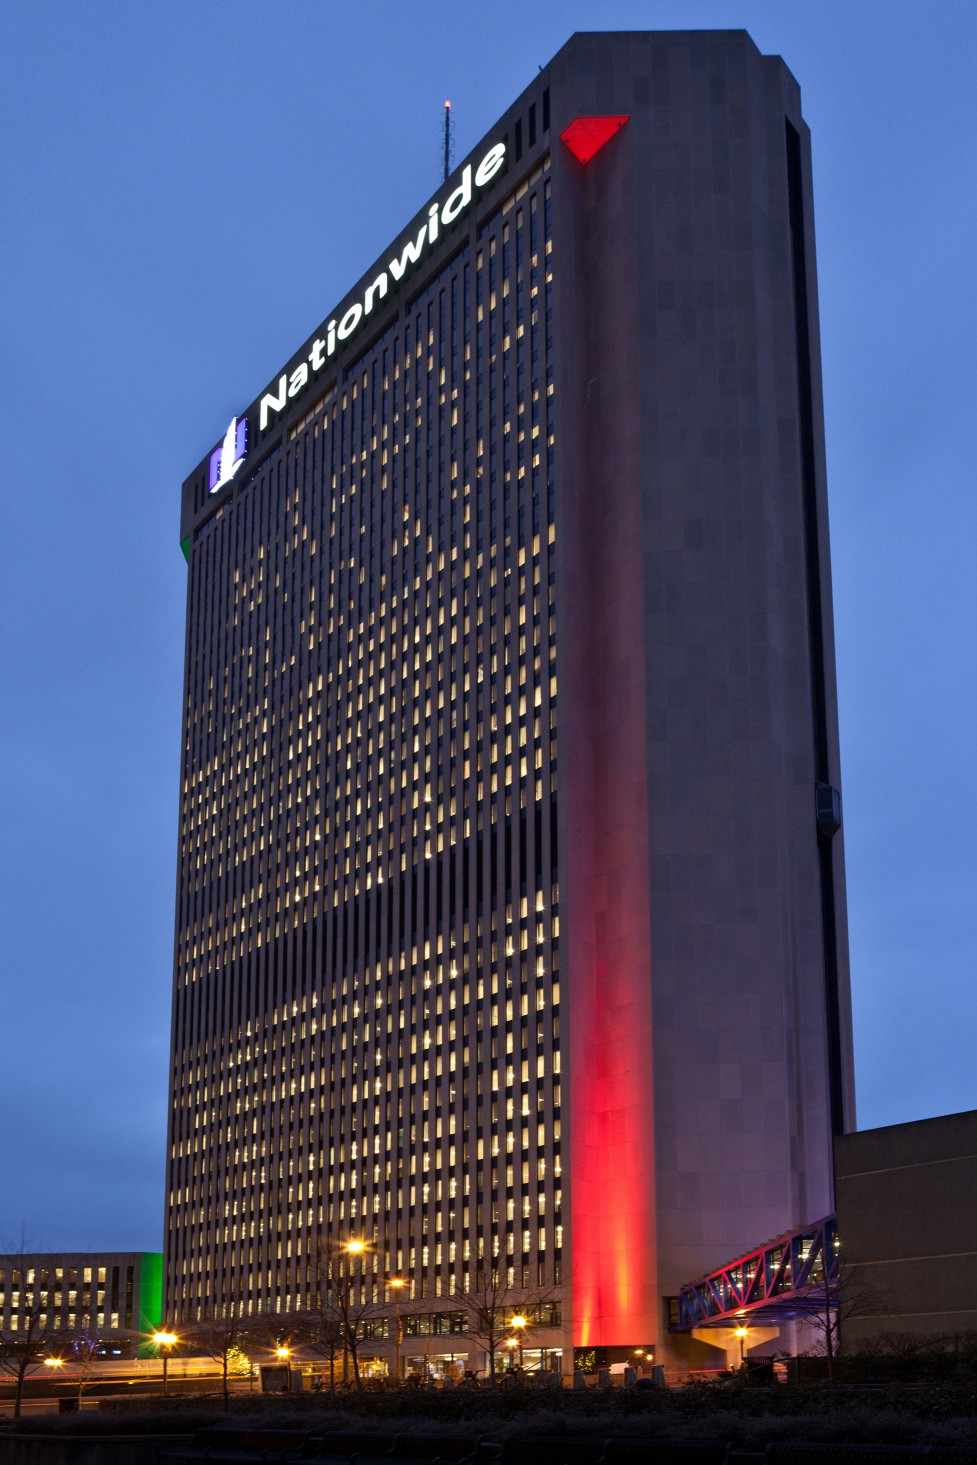 One Nationwide Plaza had previously been lit with 1000w metal halide lamps that required colored gels.